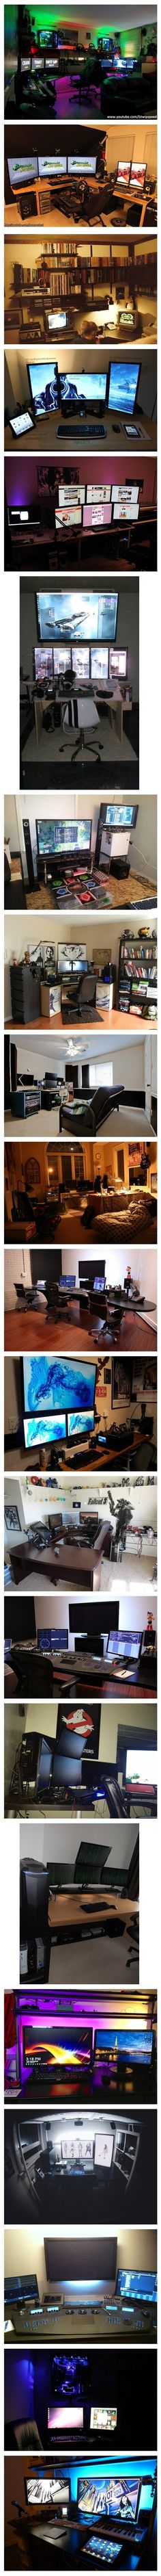 Most of these are gaming setups but there are some great ideas for multi screen configs for video editing.